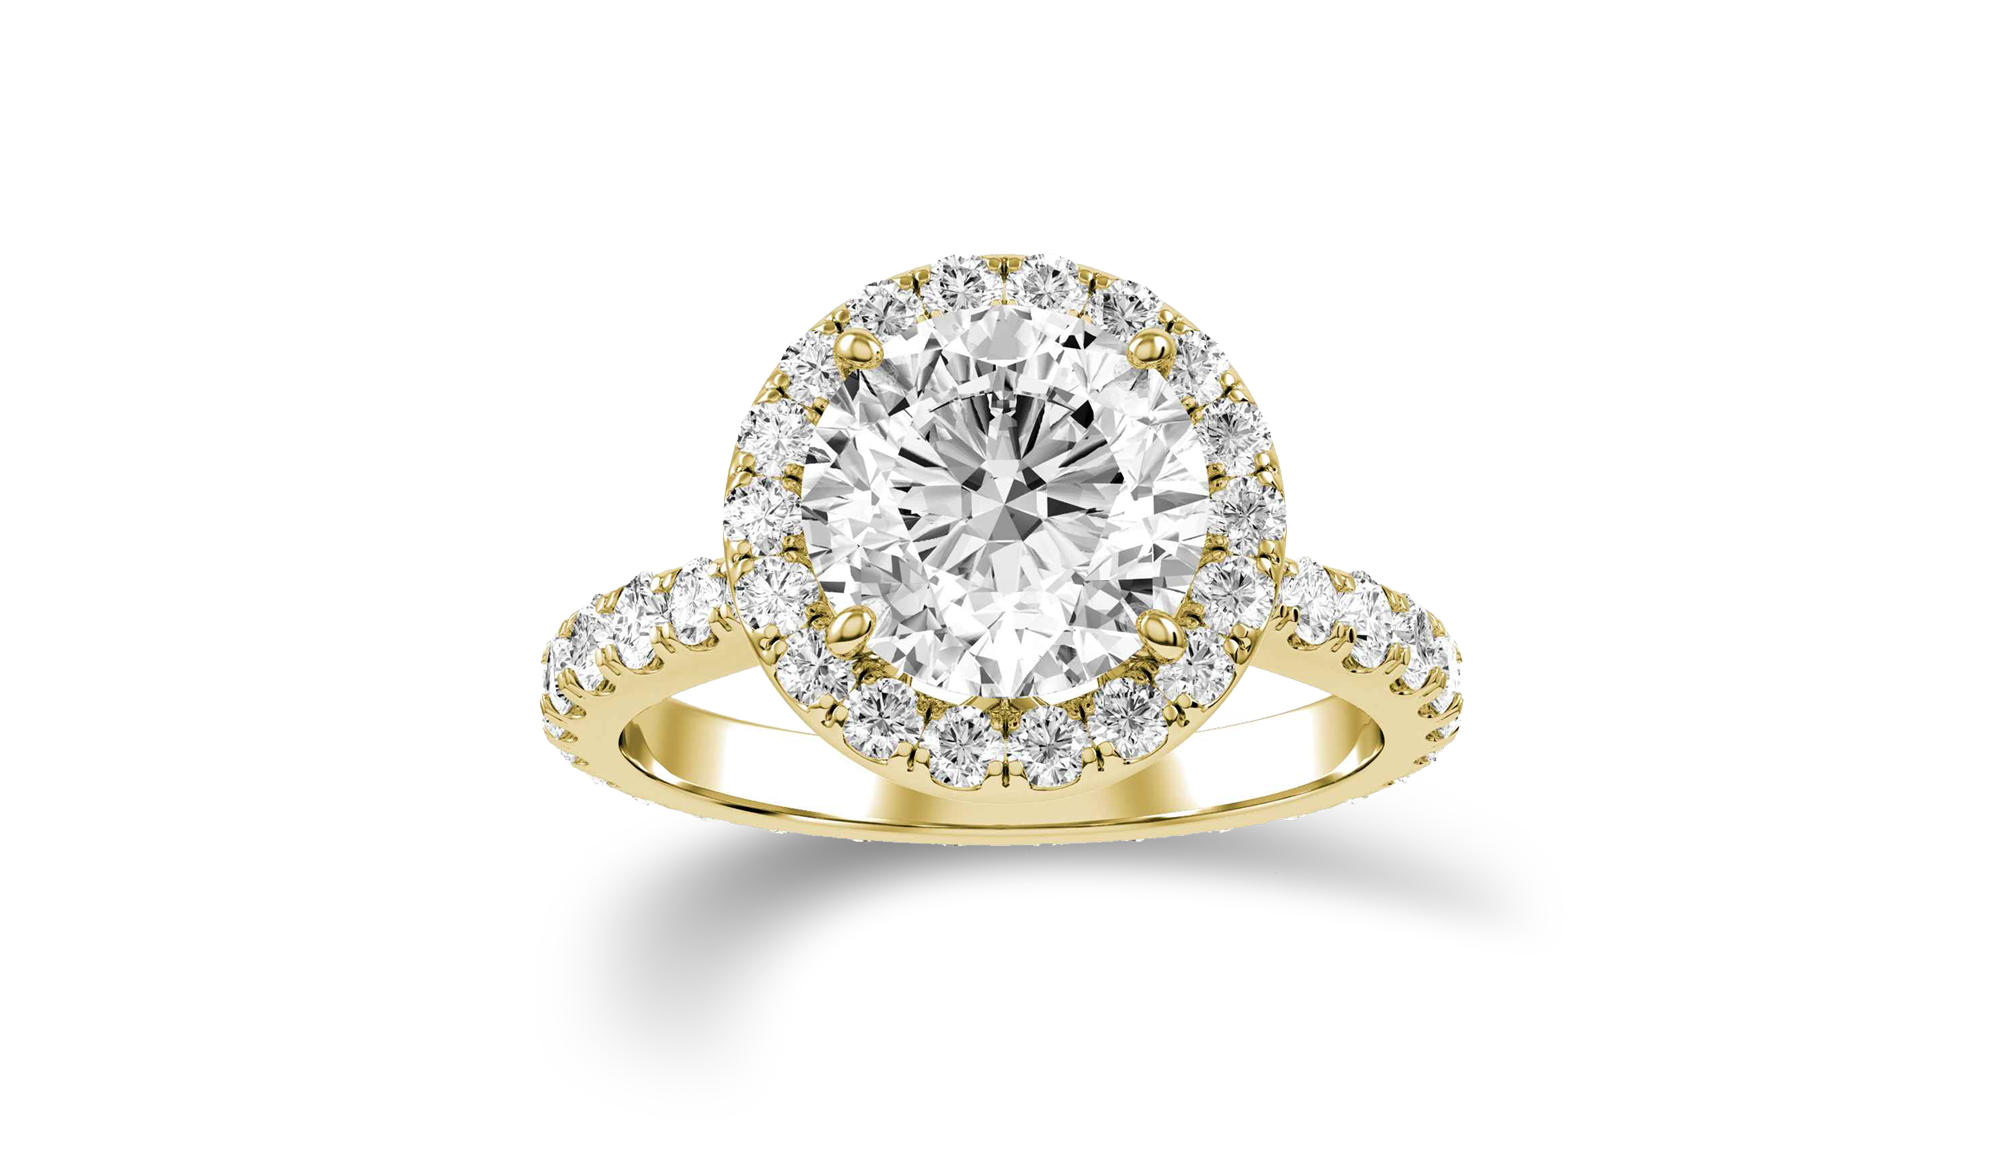 Yellow gold and diamond ring - View Now!